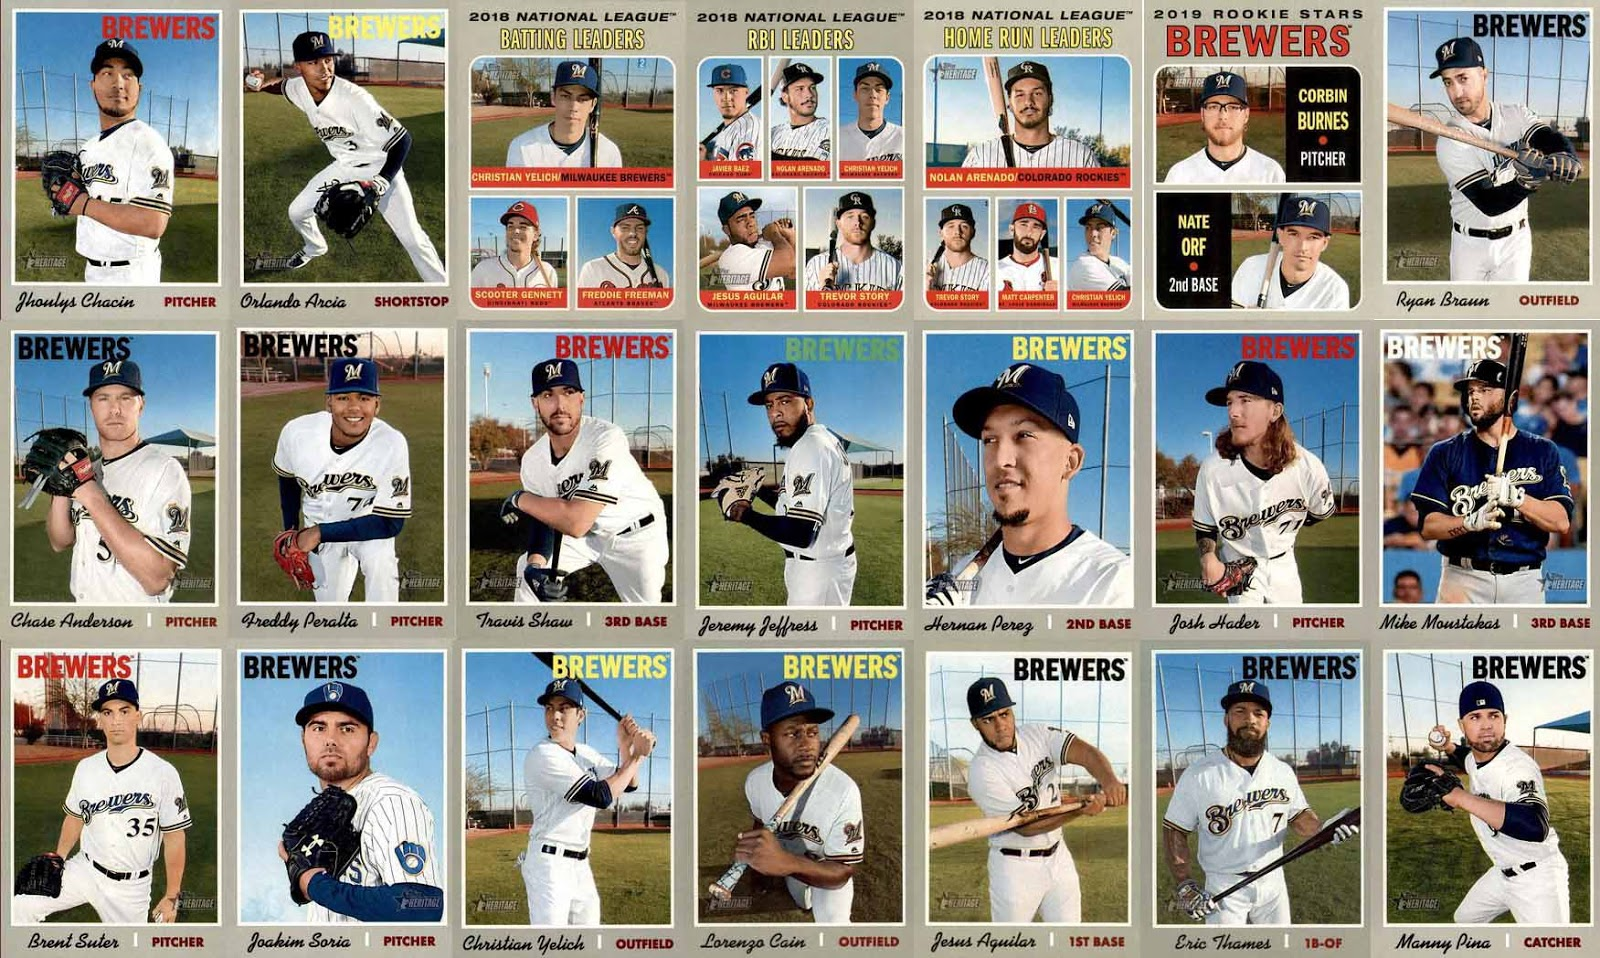 Miles from Miller: 2019 Topps Heritage Ultimate Brewers Checklist